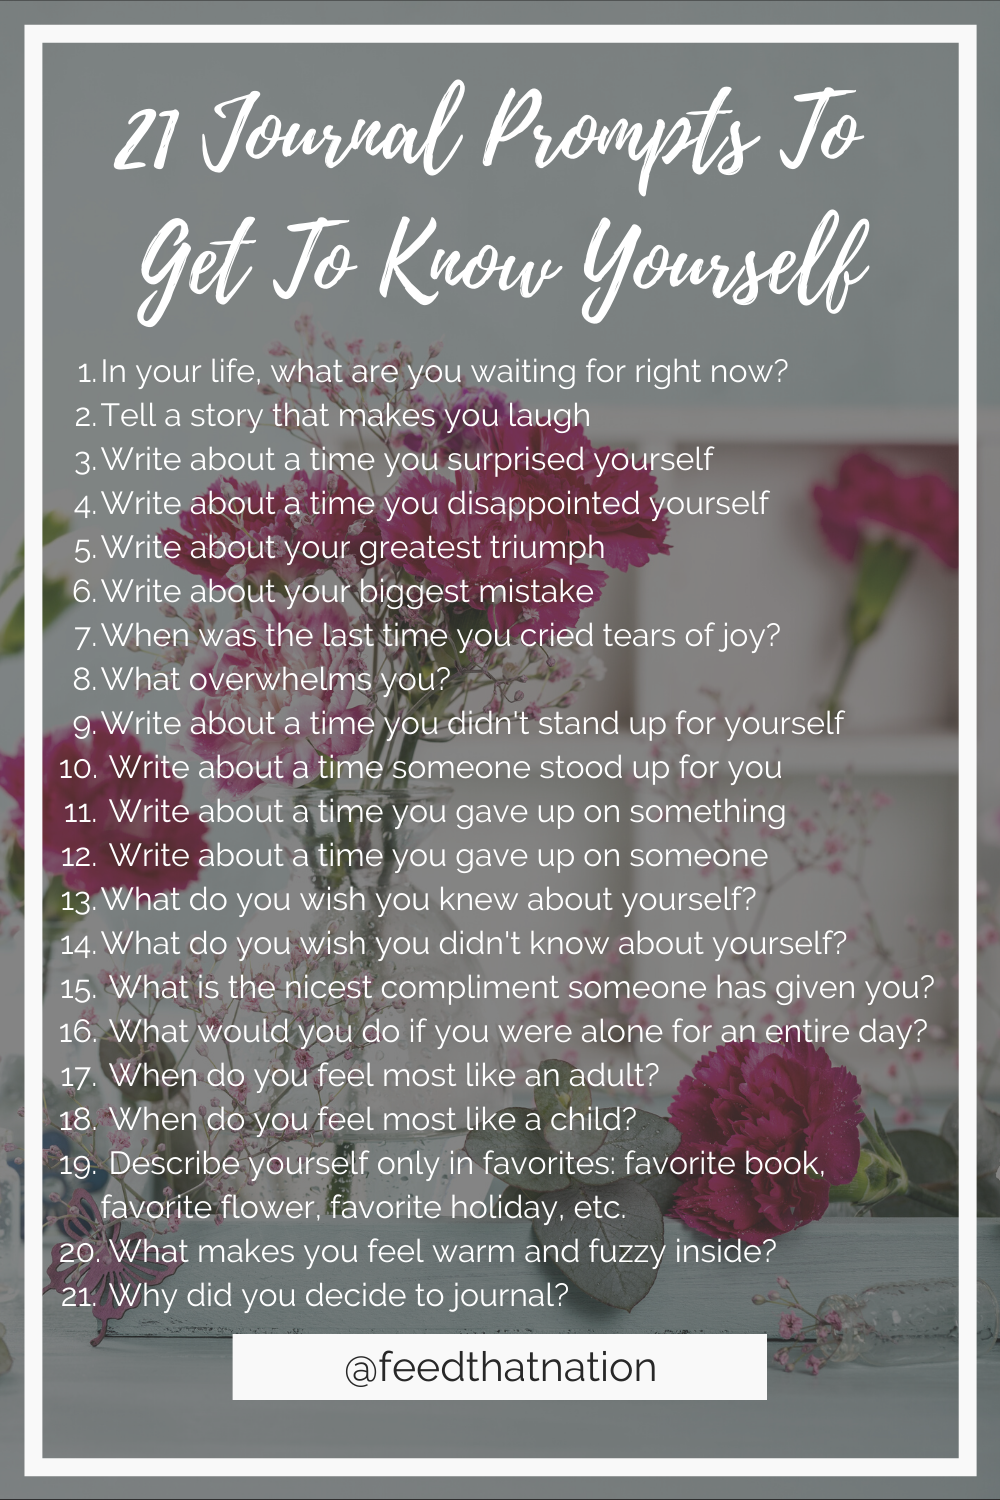 21 journal prompts to get to know yourself